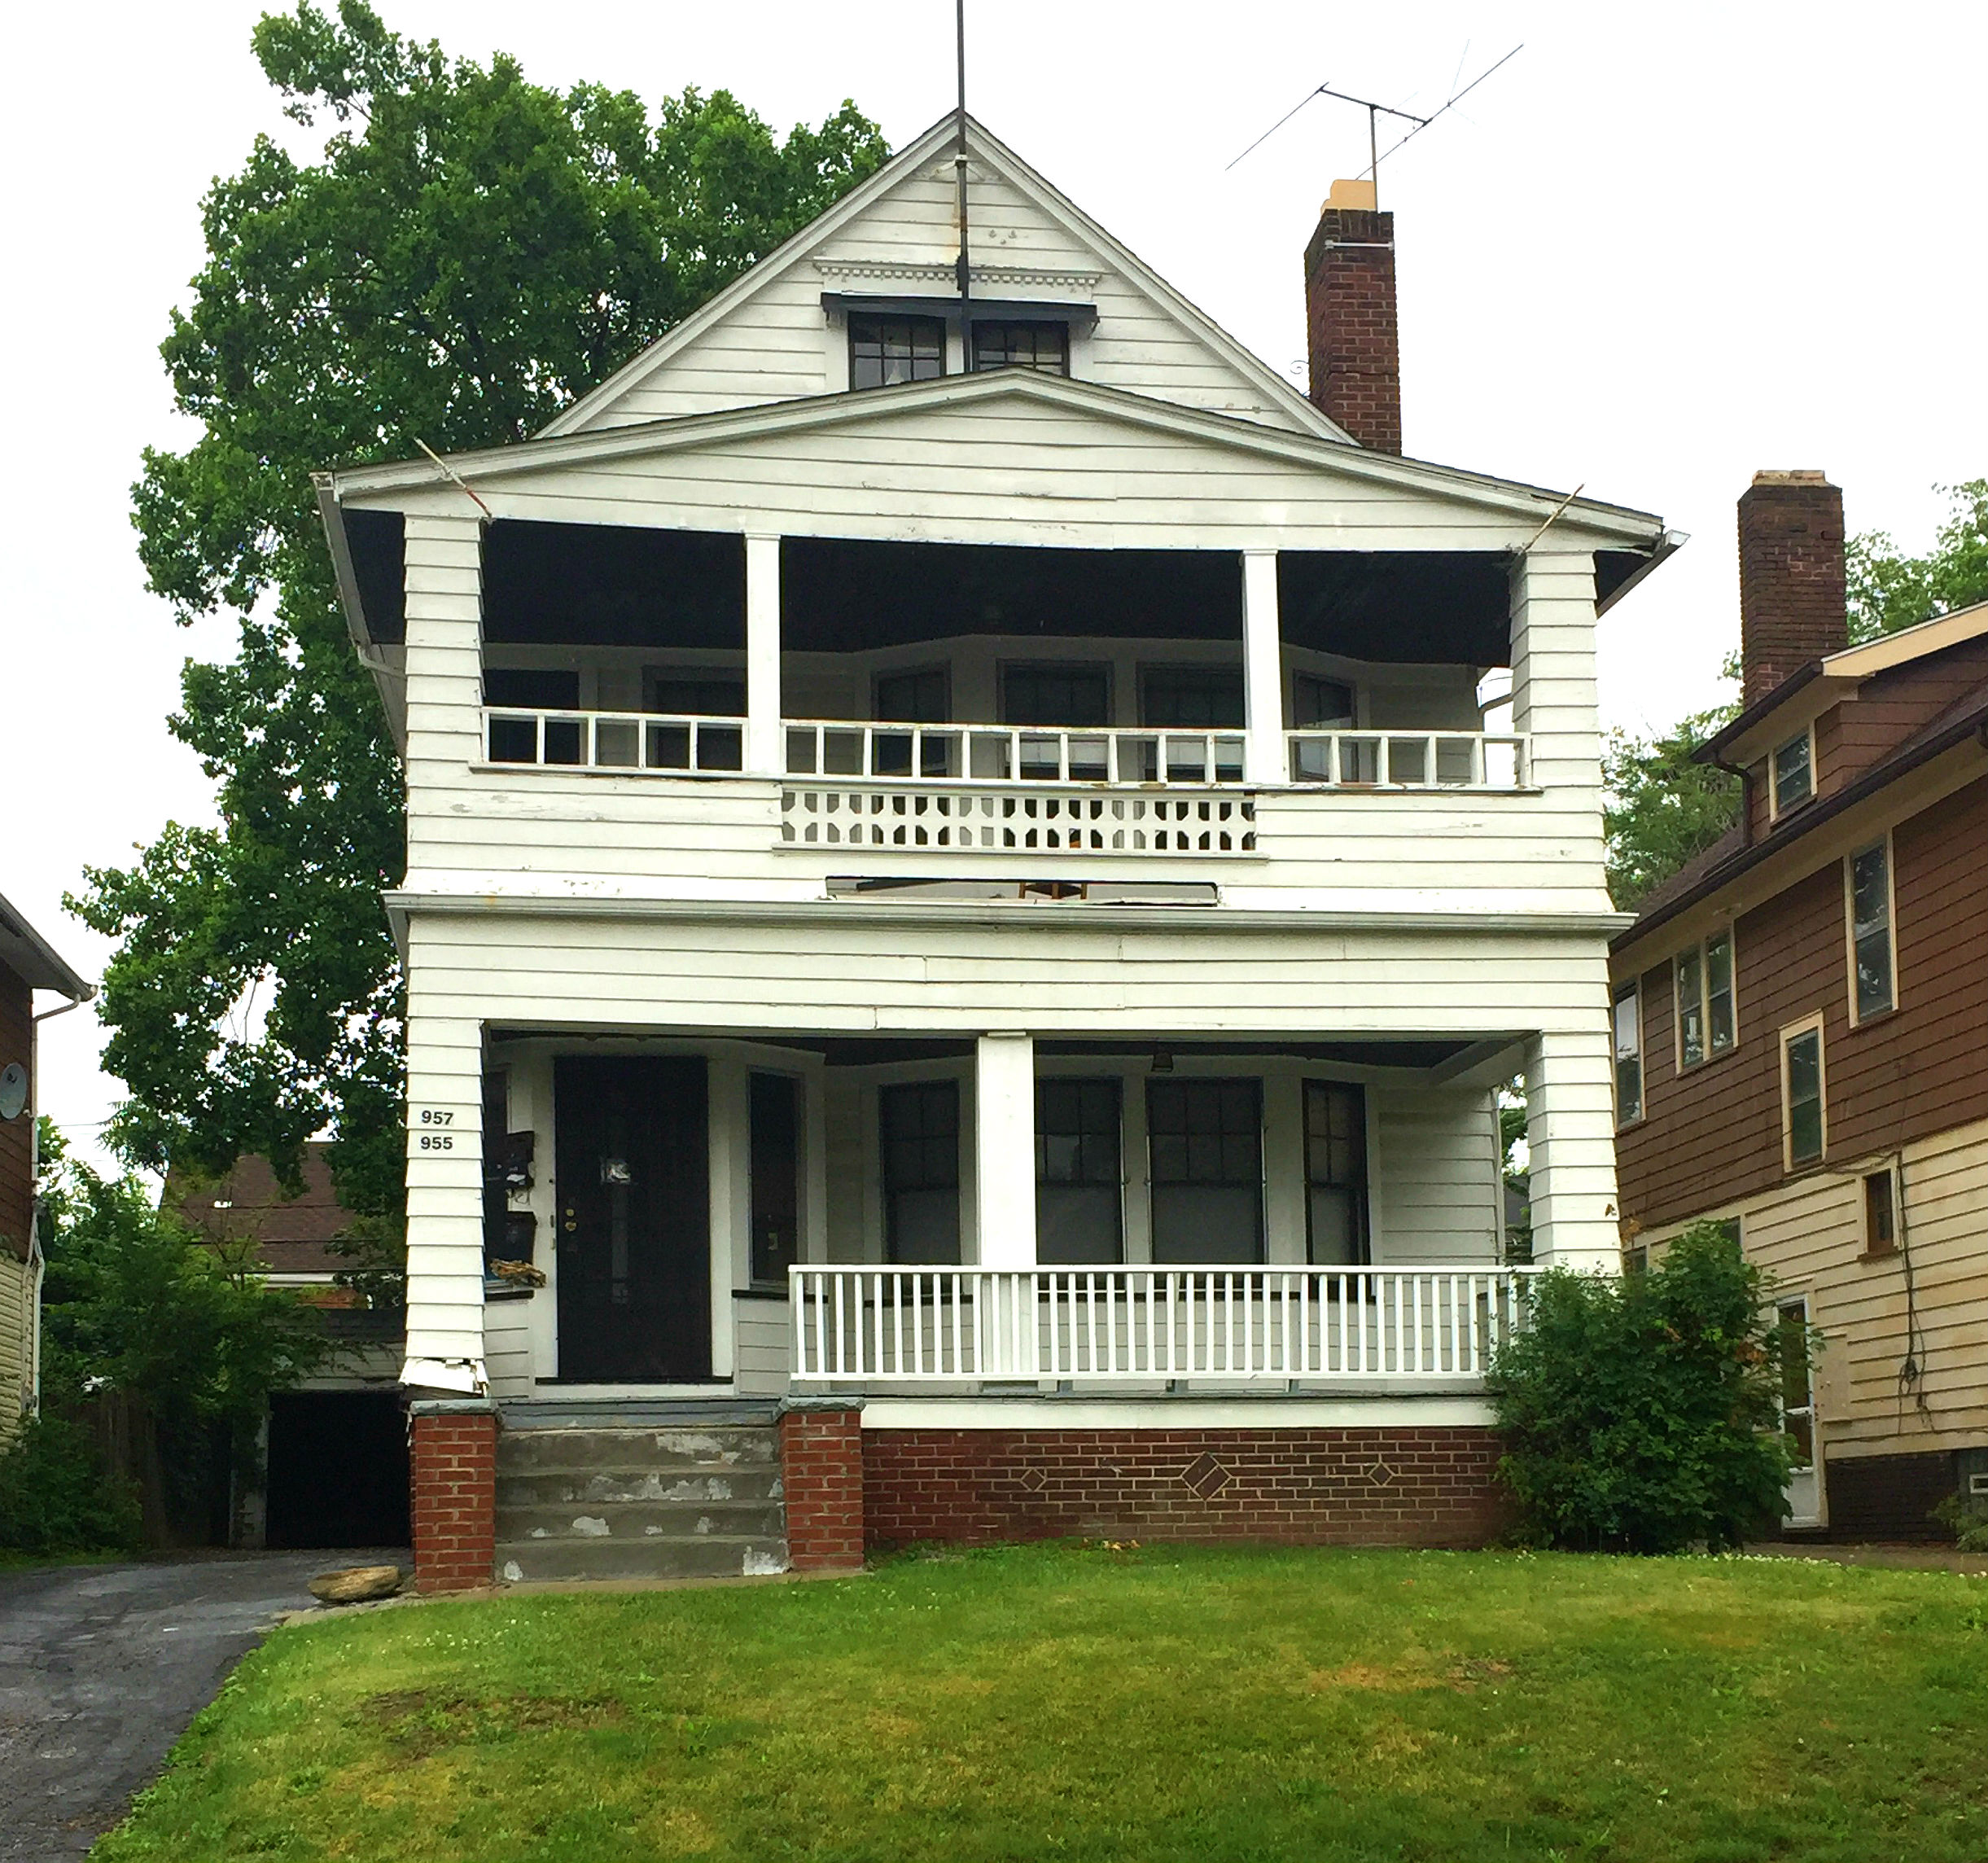 955 Helmsdale Rd., Cleveland Hts. | 4 bed 2 bath | 2,131 Sq. Ft. | $38,000